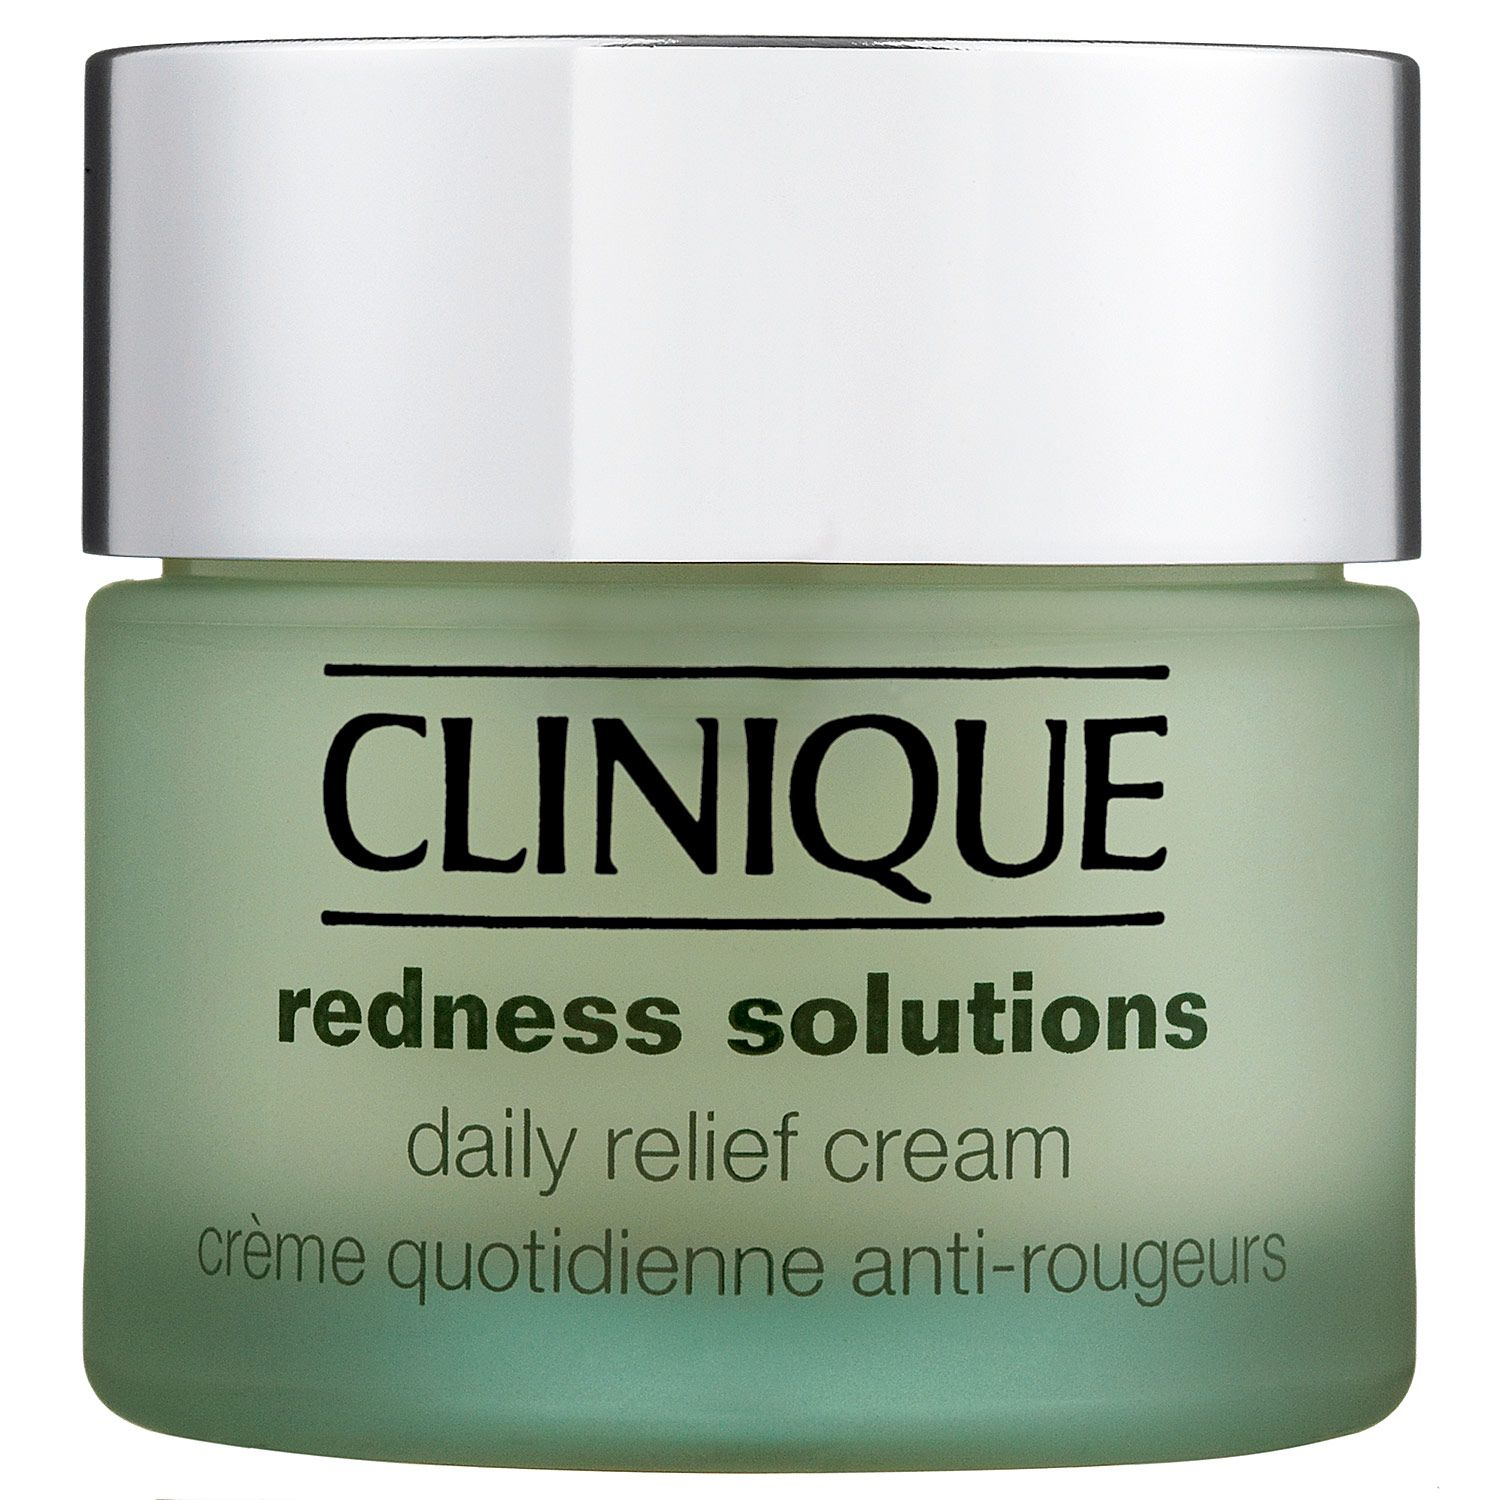 Redness Solutions with Probiotic Technology Daily Relief